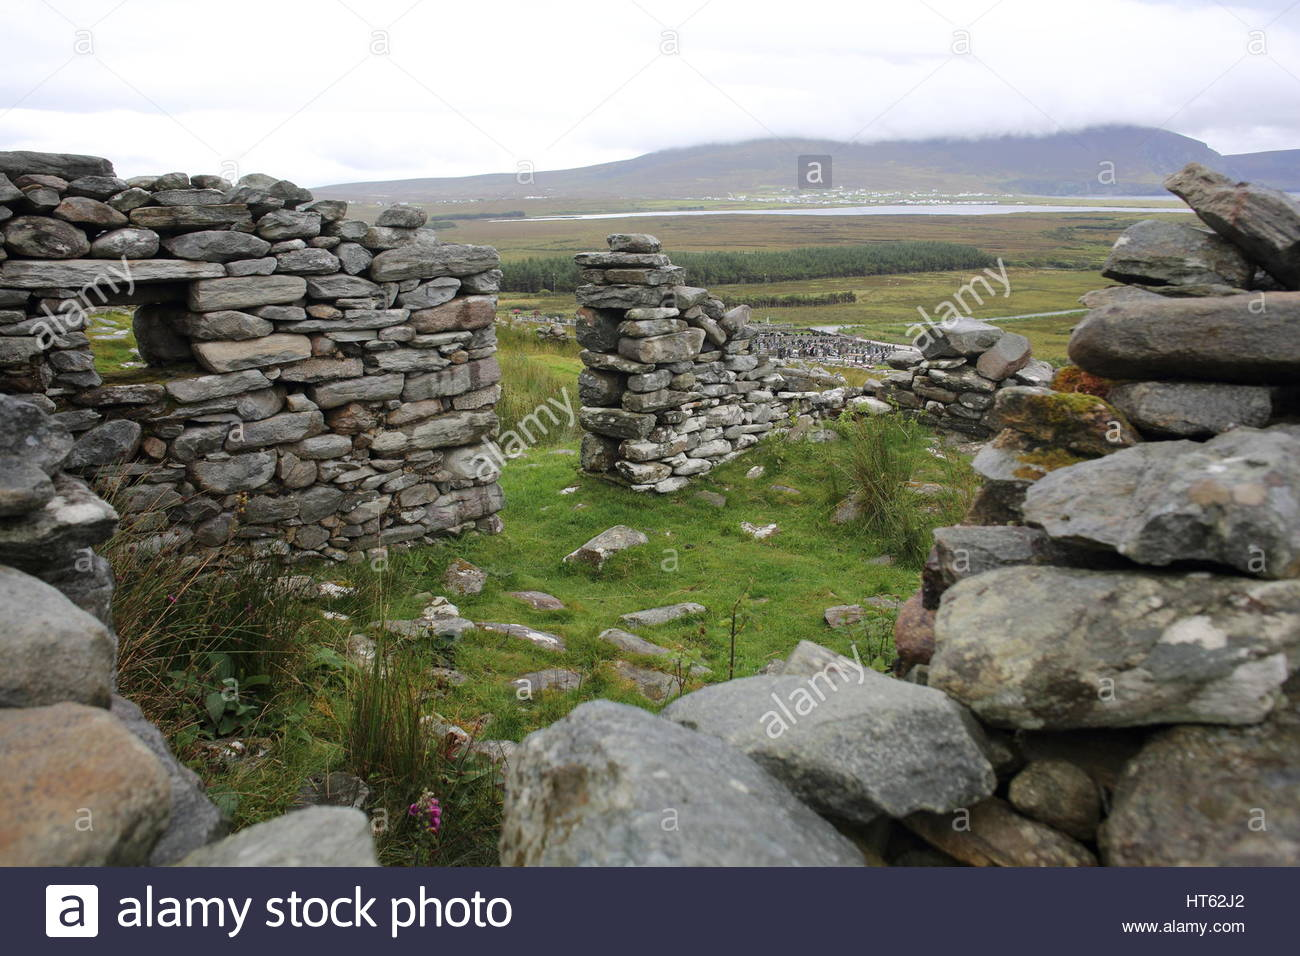 Remains of a deserted 19th century village on Achill Island, County mayo, Ireland - Stock Image